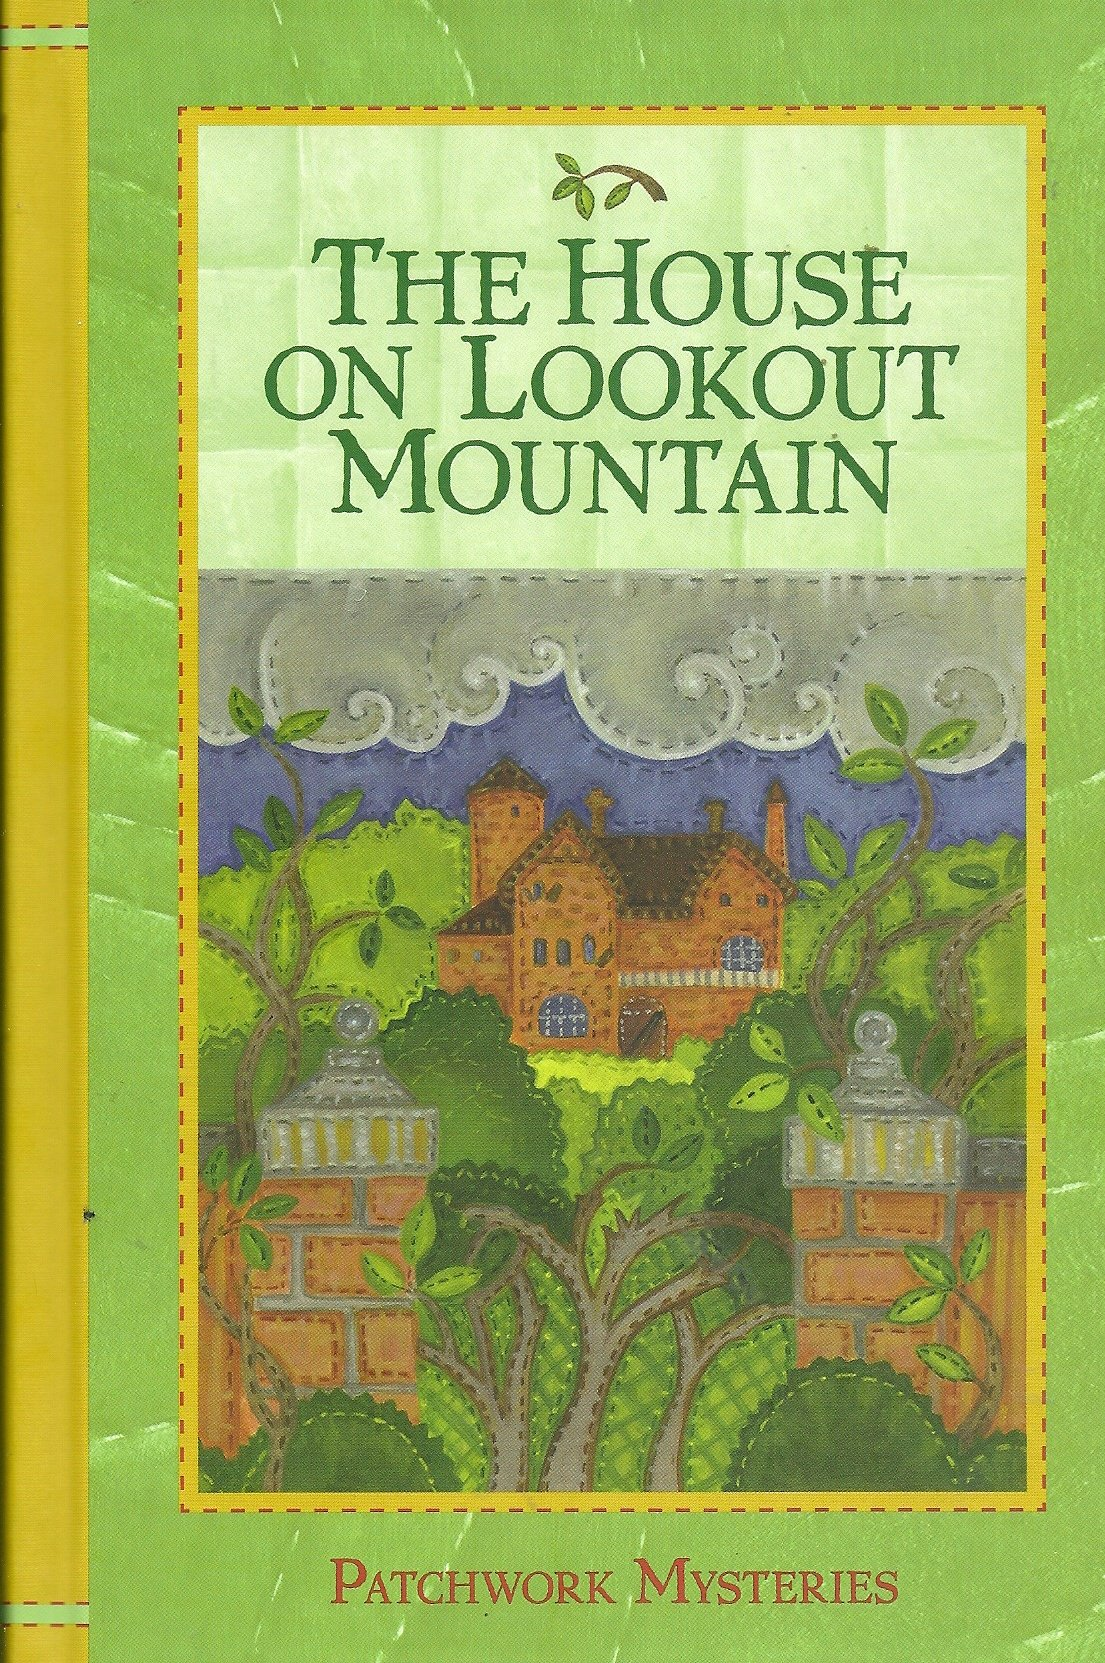 The House on Lookout Mountain (Patchwork Mysteries, Volume 14)